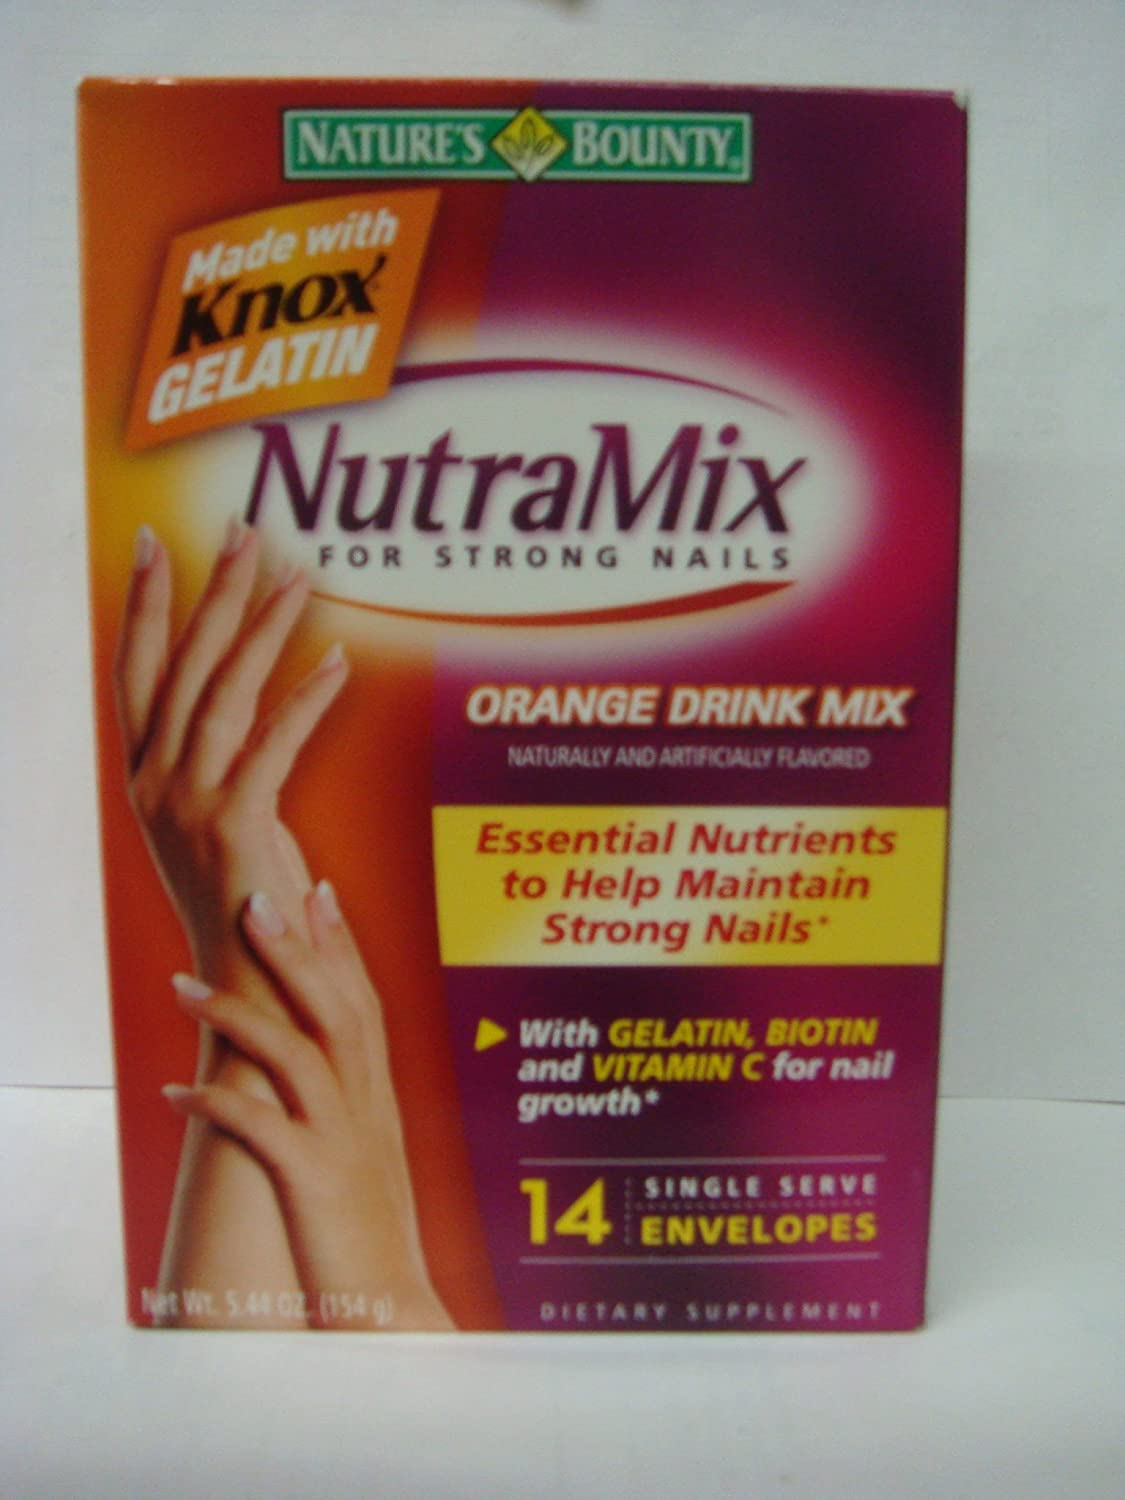 Knox NutraMix for Strong Nails